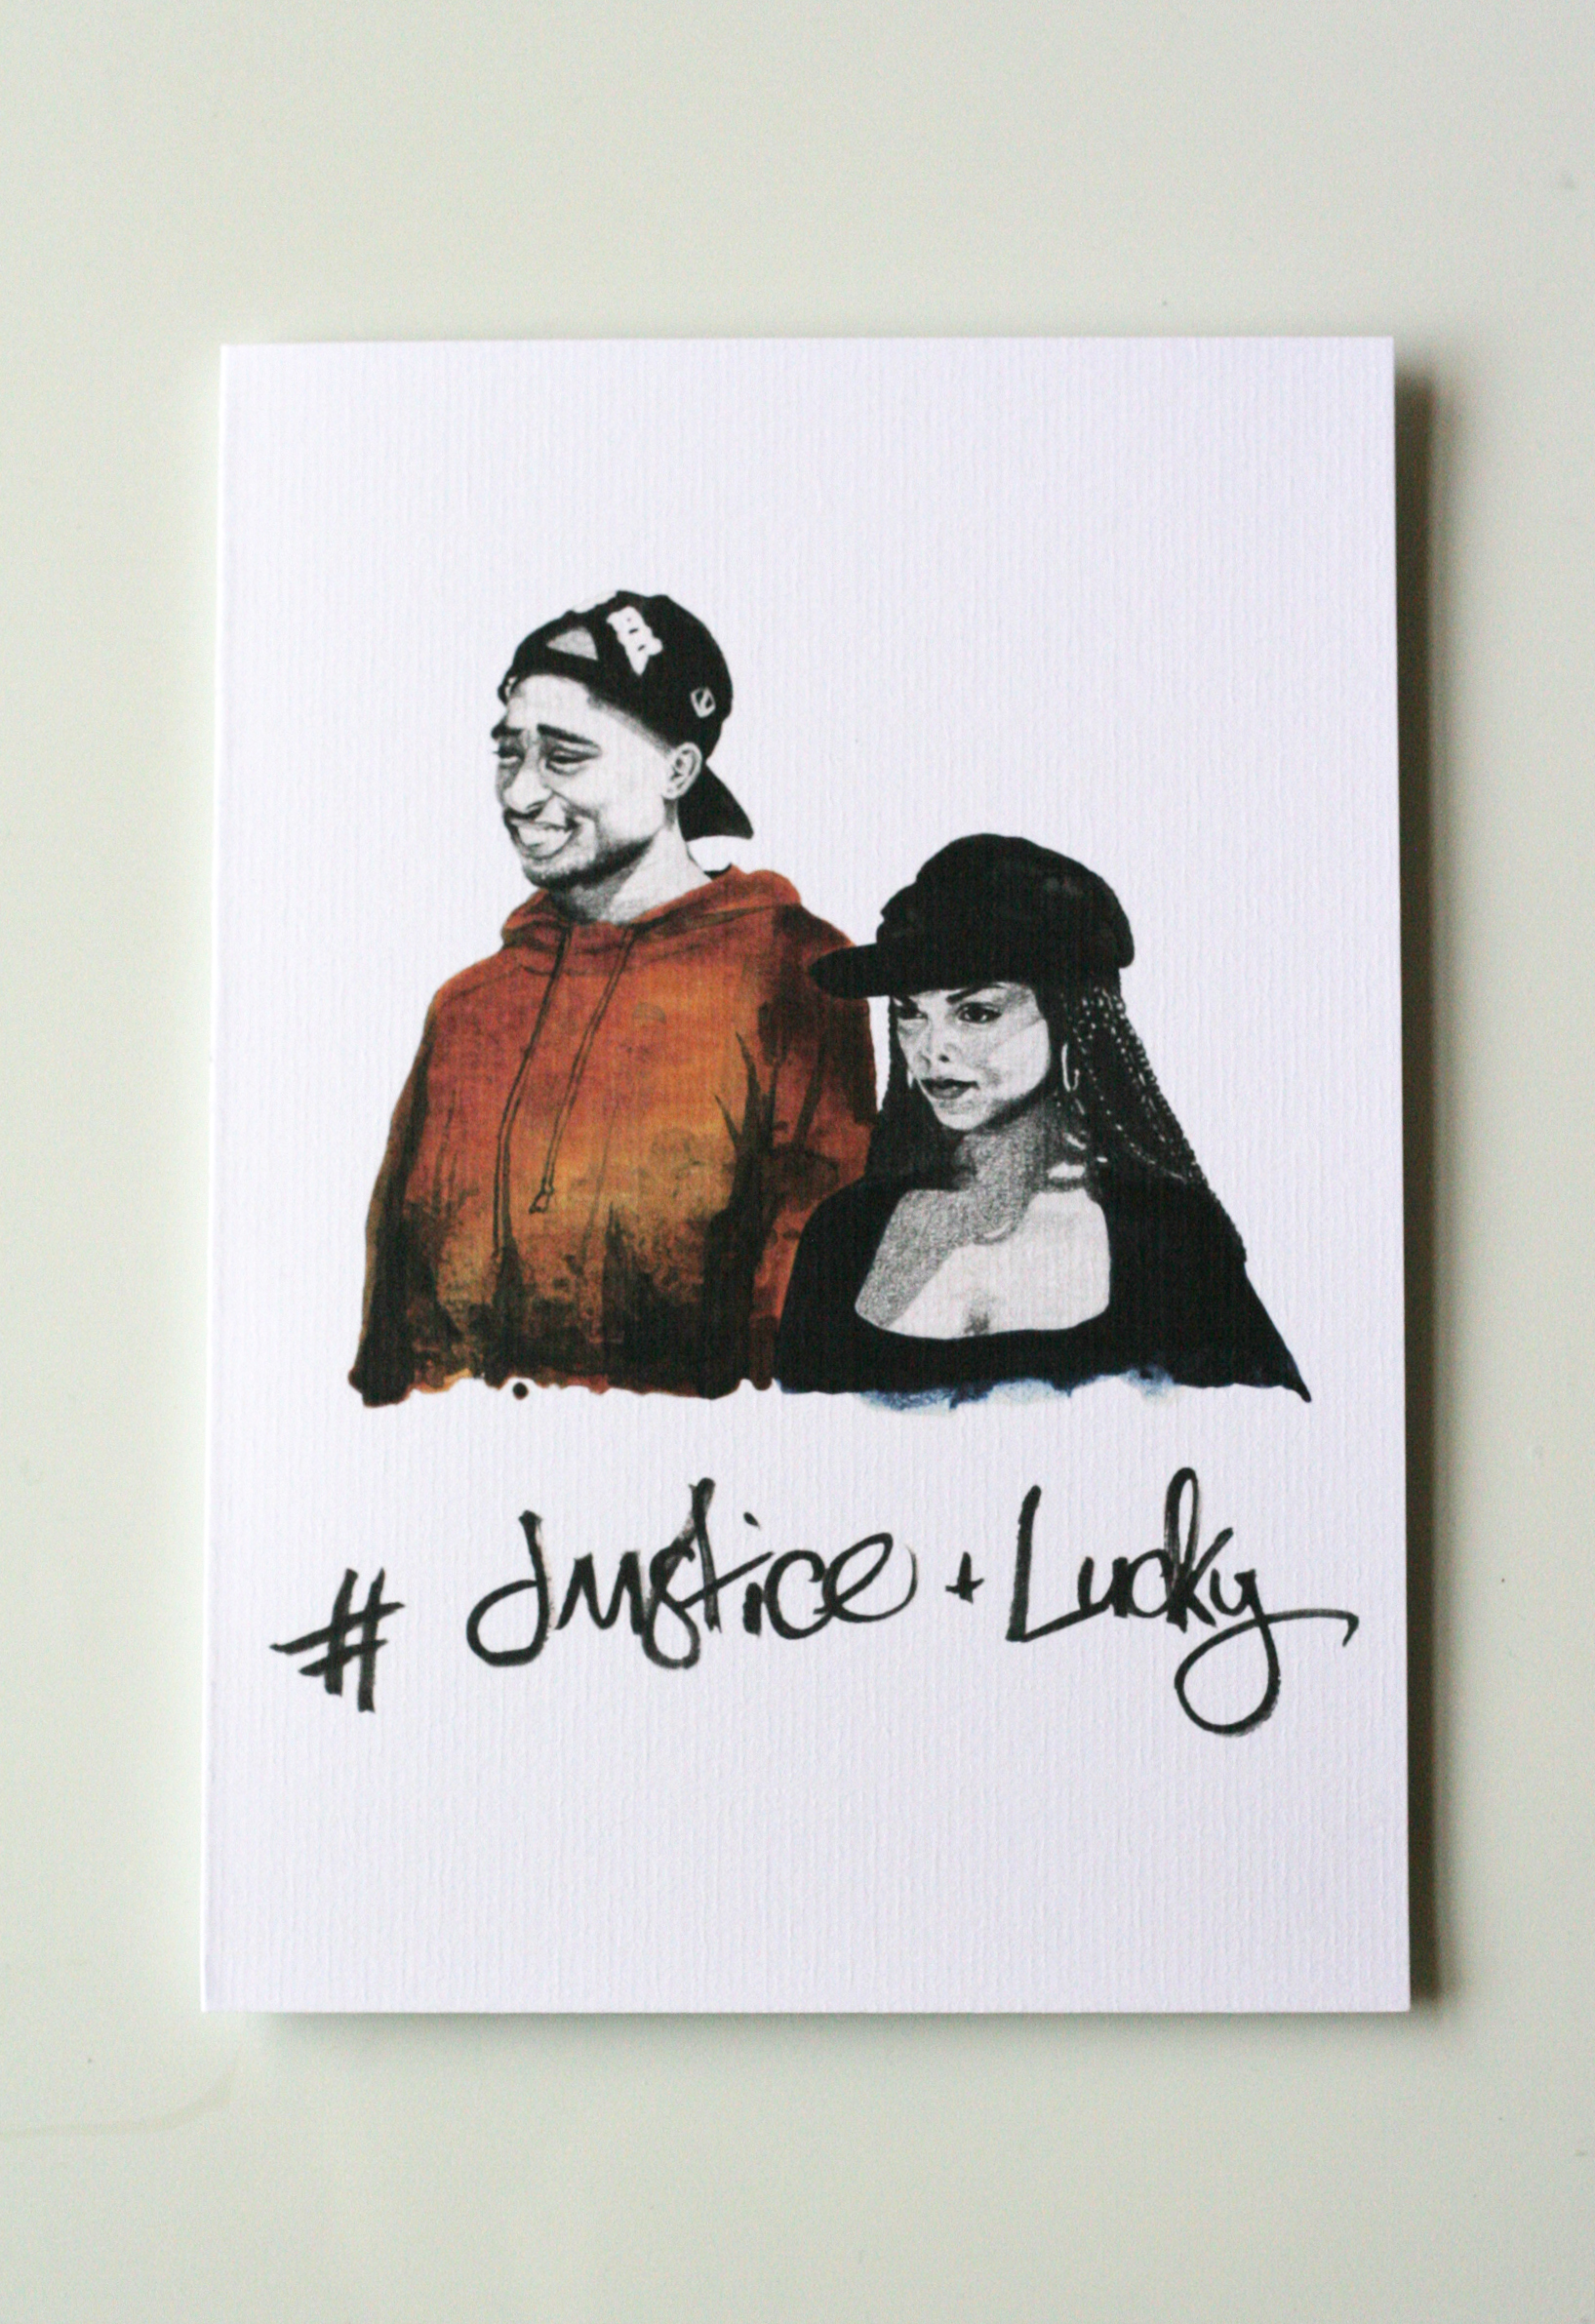 ' #JUSTICE + LUCKY'  A5 Valentines Card £3.50 in Shop> Cards. This card is based on the 1993 Film  Poetic Justice  directed by John Singleton. The best couple goals!